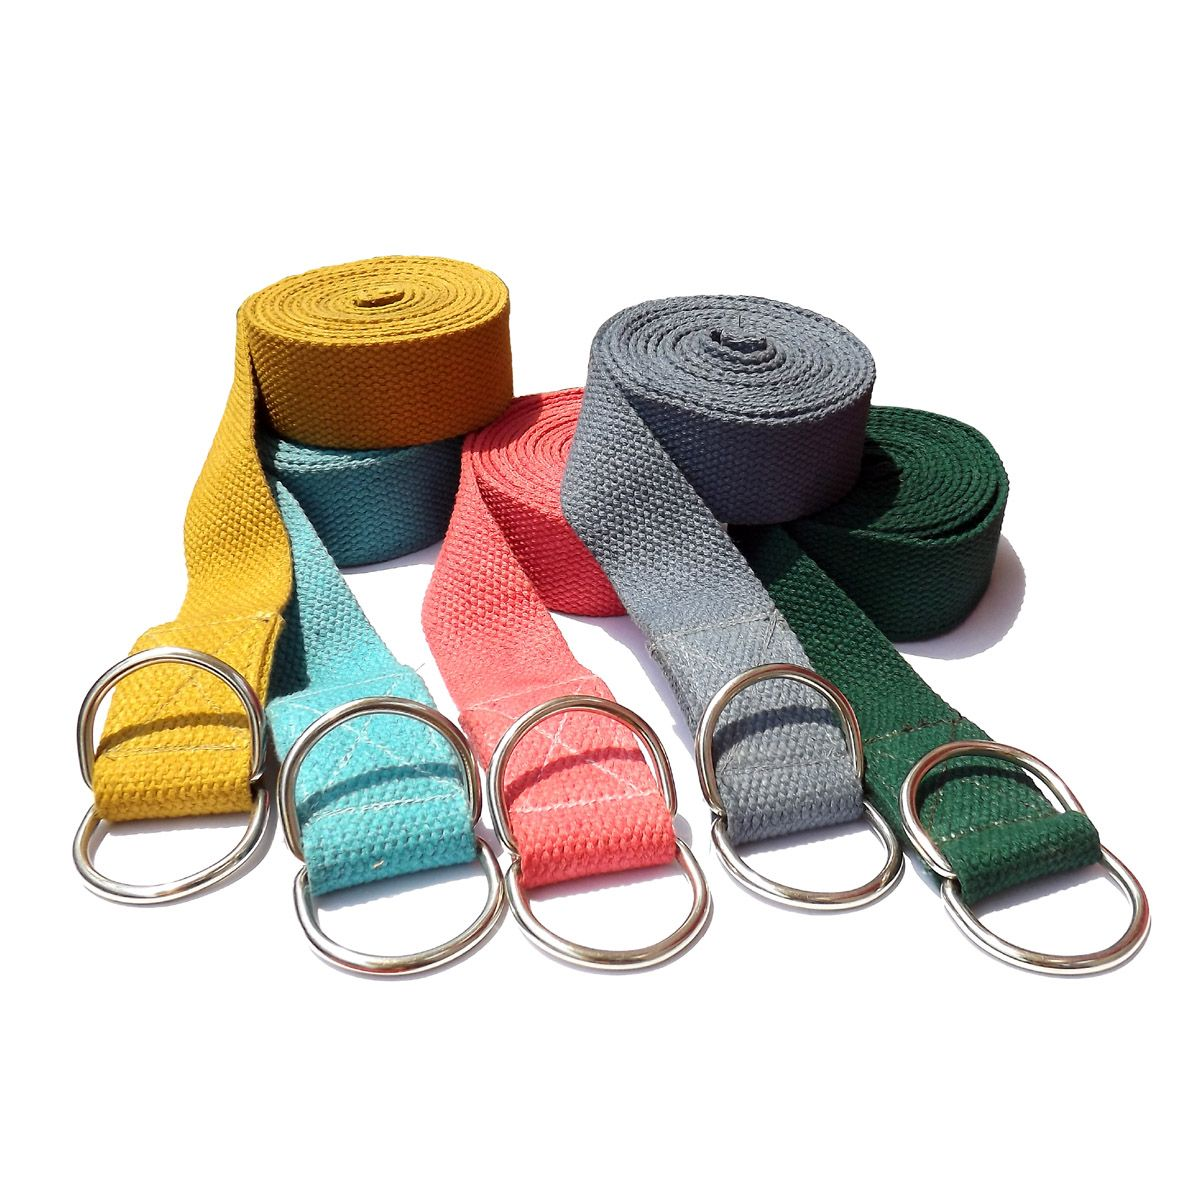 3 Essential points to look for in your #YogaStrap. 1. Material 2. Stickiness 3. Lifespan and Maintenance For more detail click: https://medium.com/@clonko/3-essential-points-to-look-for-in-your-yoga-strap-6a6673121097